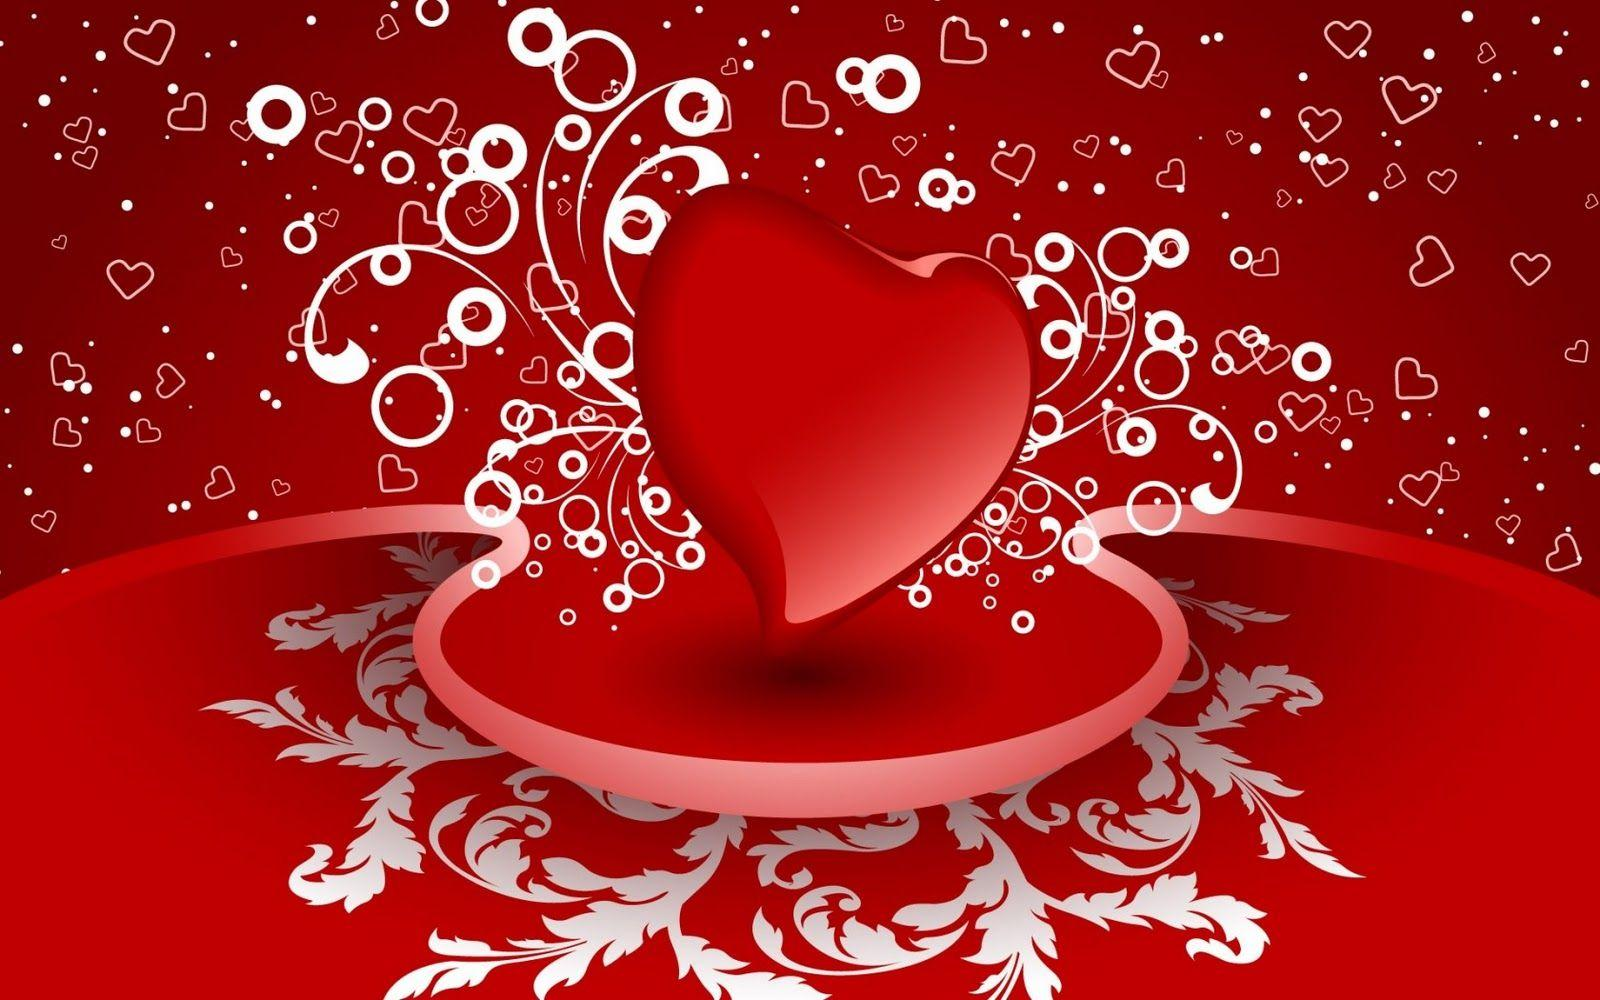 Wallpaper download free image search - Valentine S Day Wallpaper For Desktop